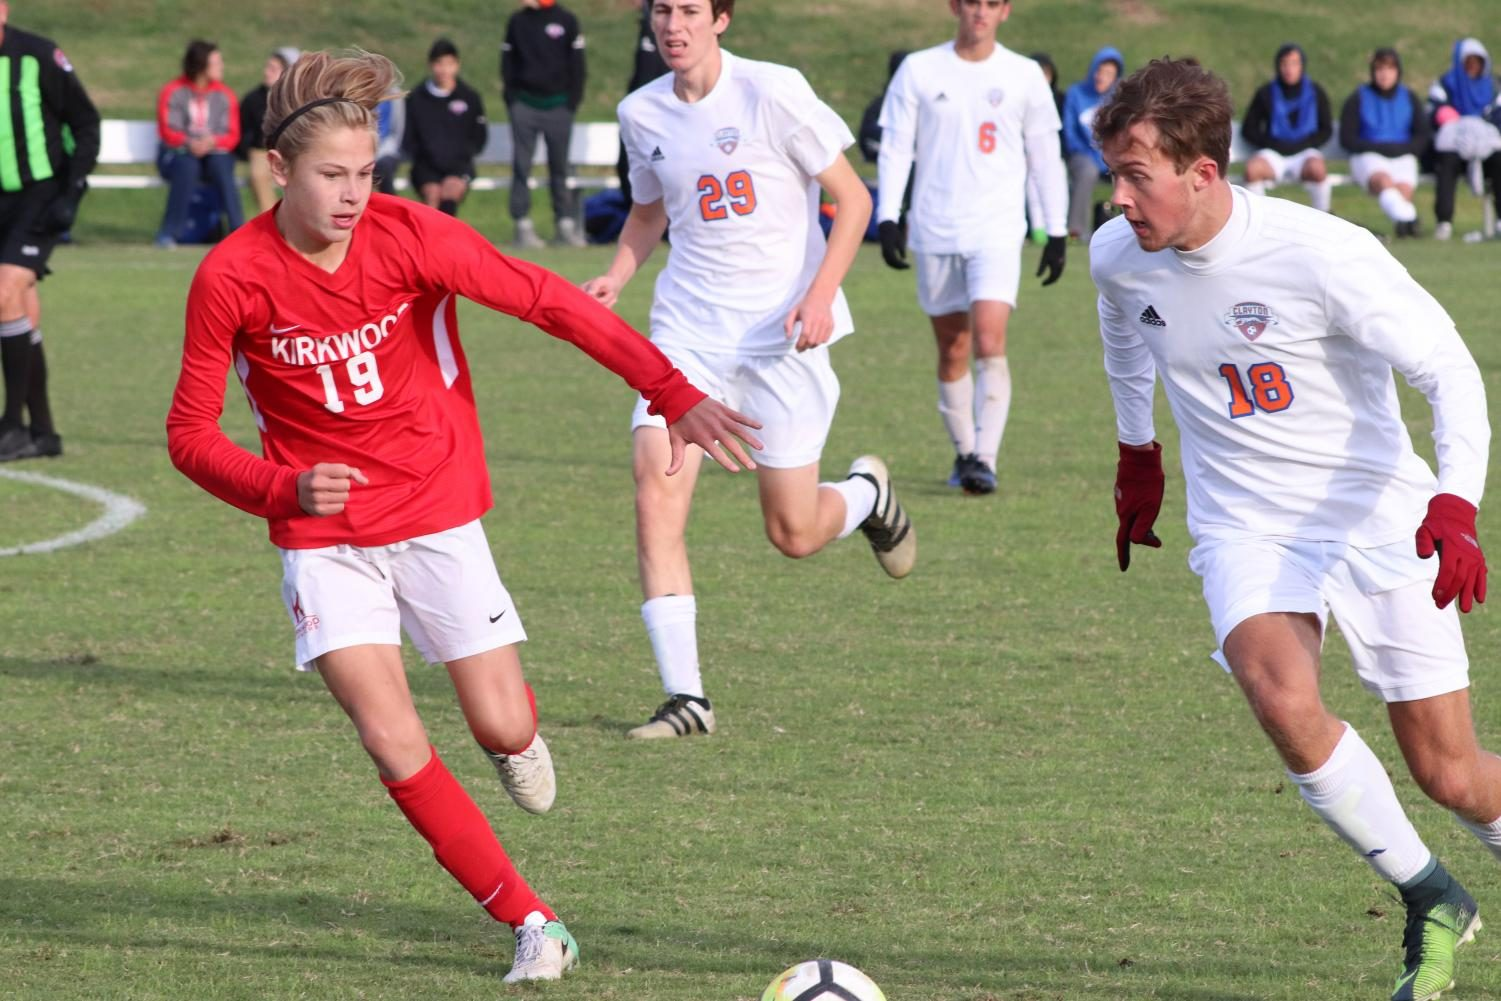 Photo gallery: varsity boys' soccer Oct. 15